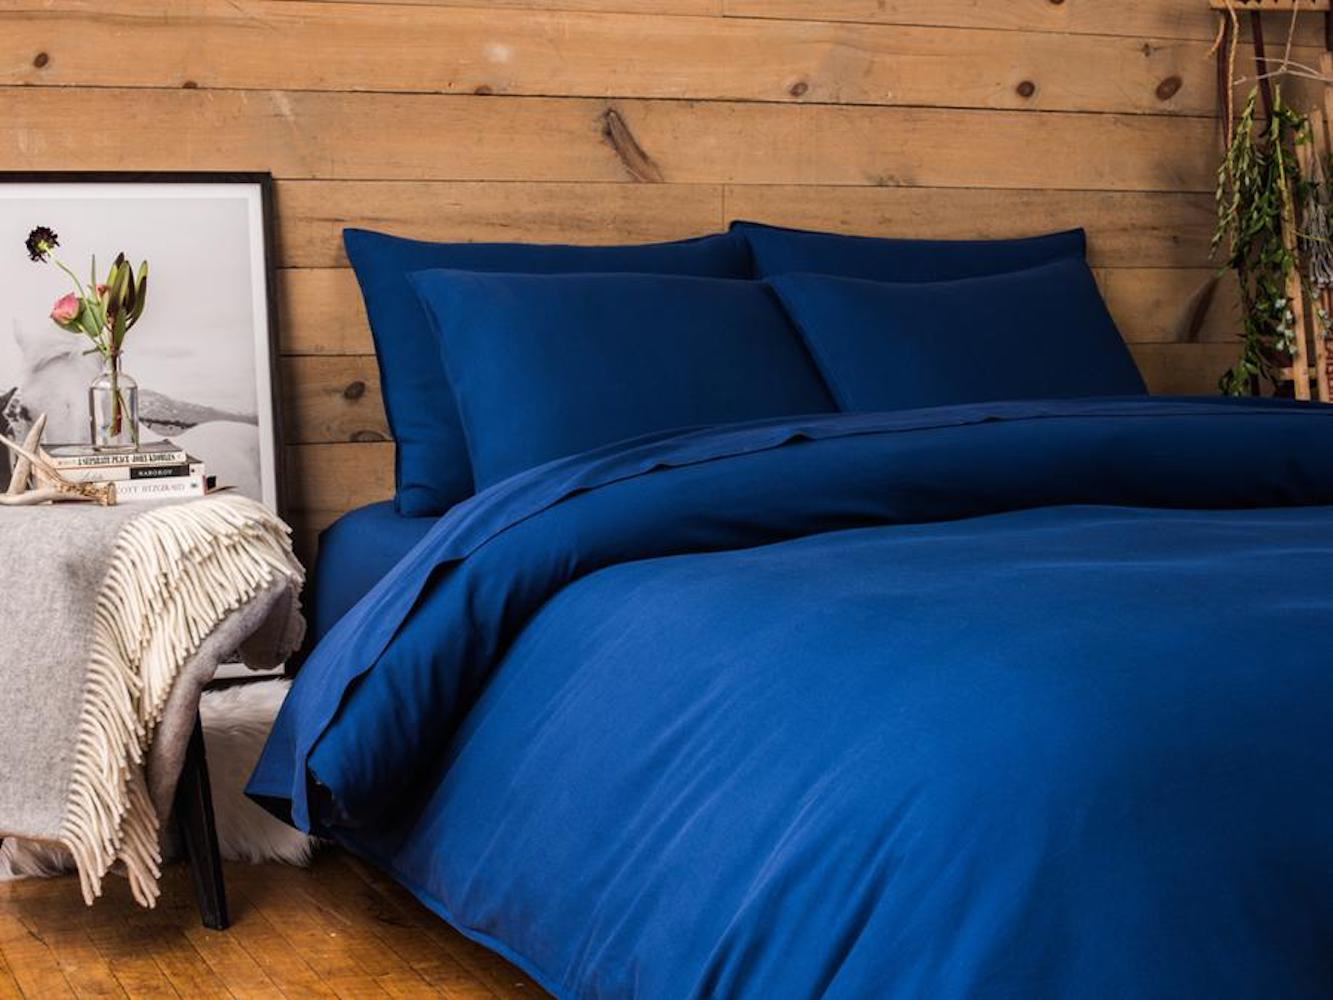 Blue Duvet Bed